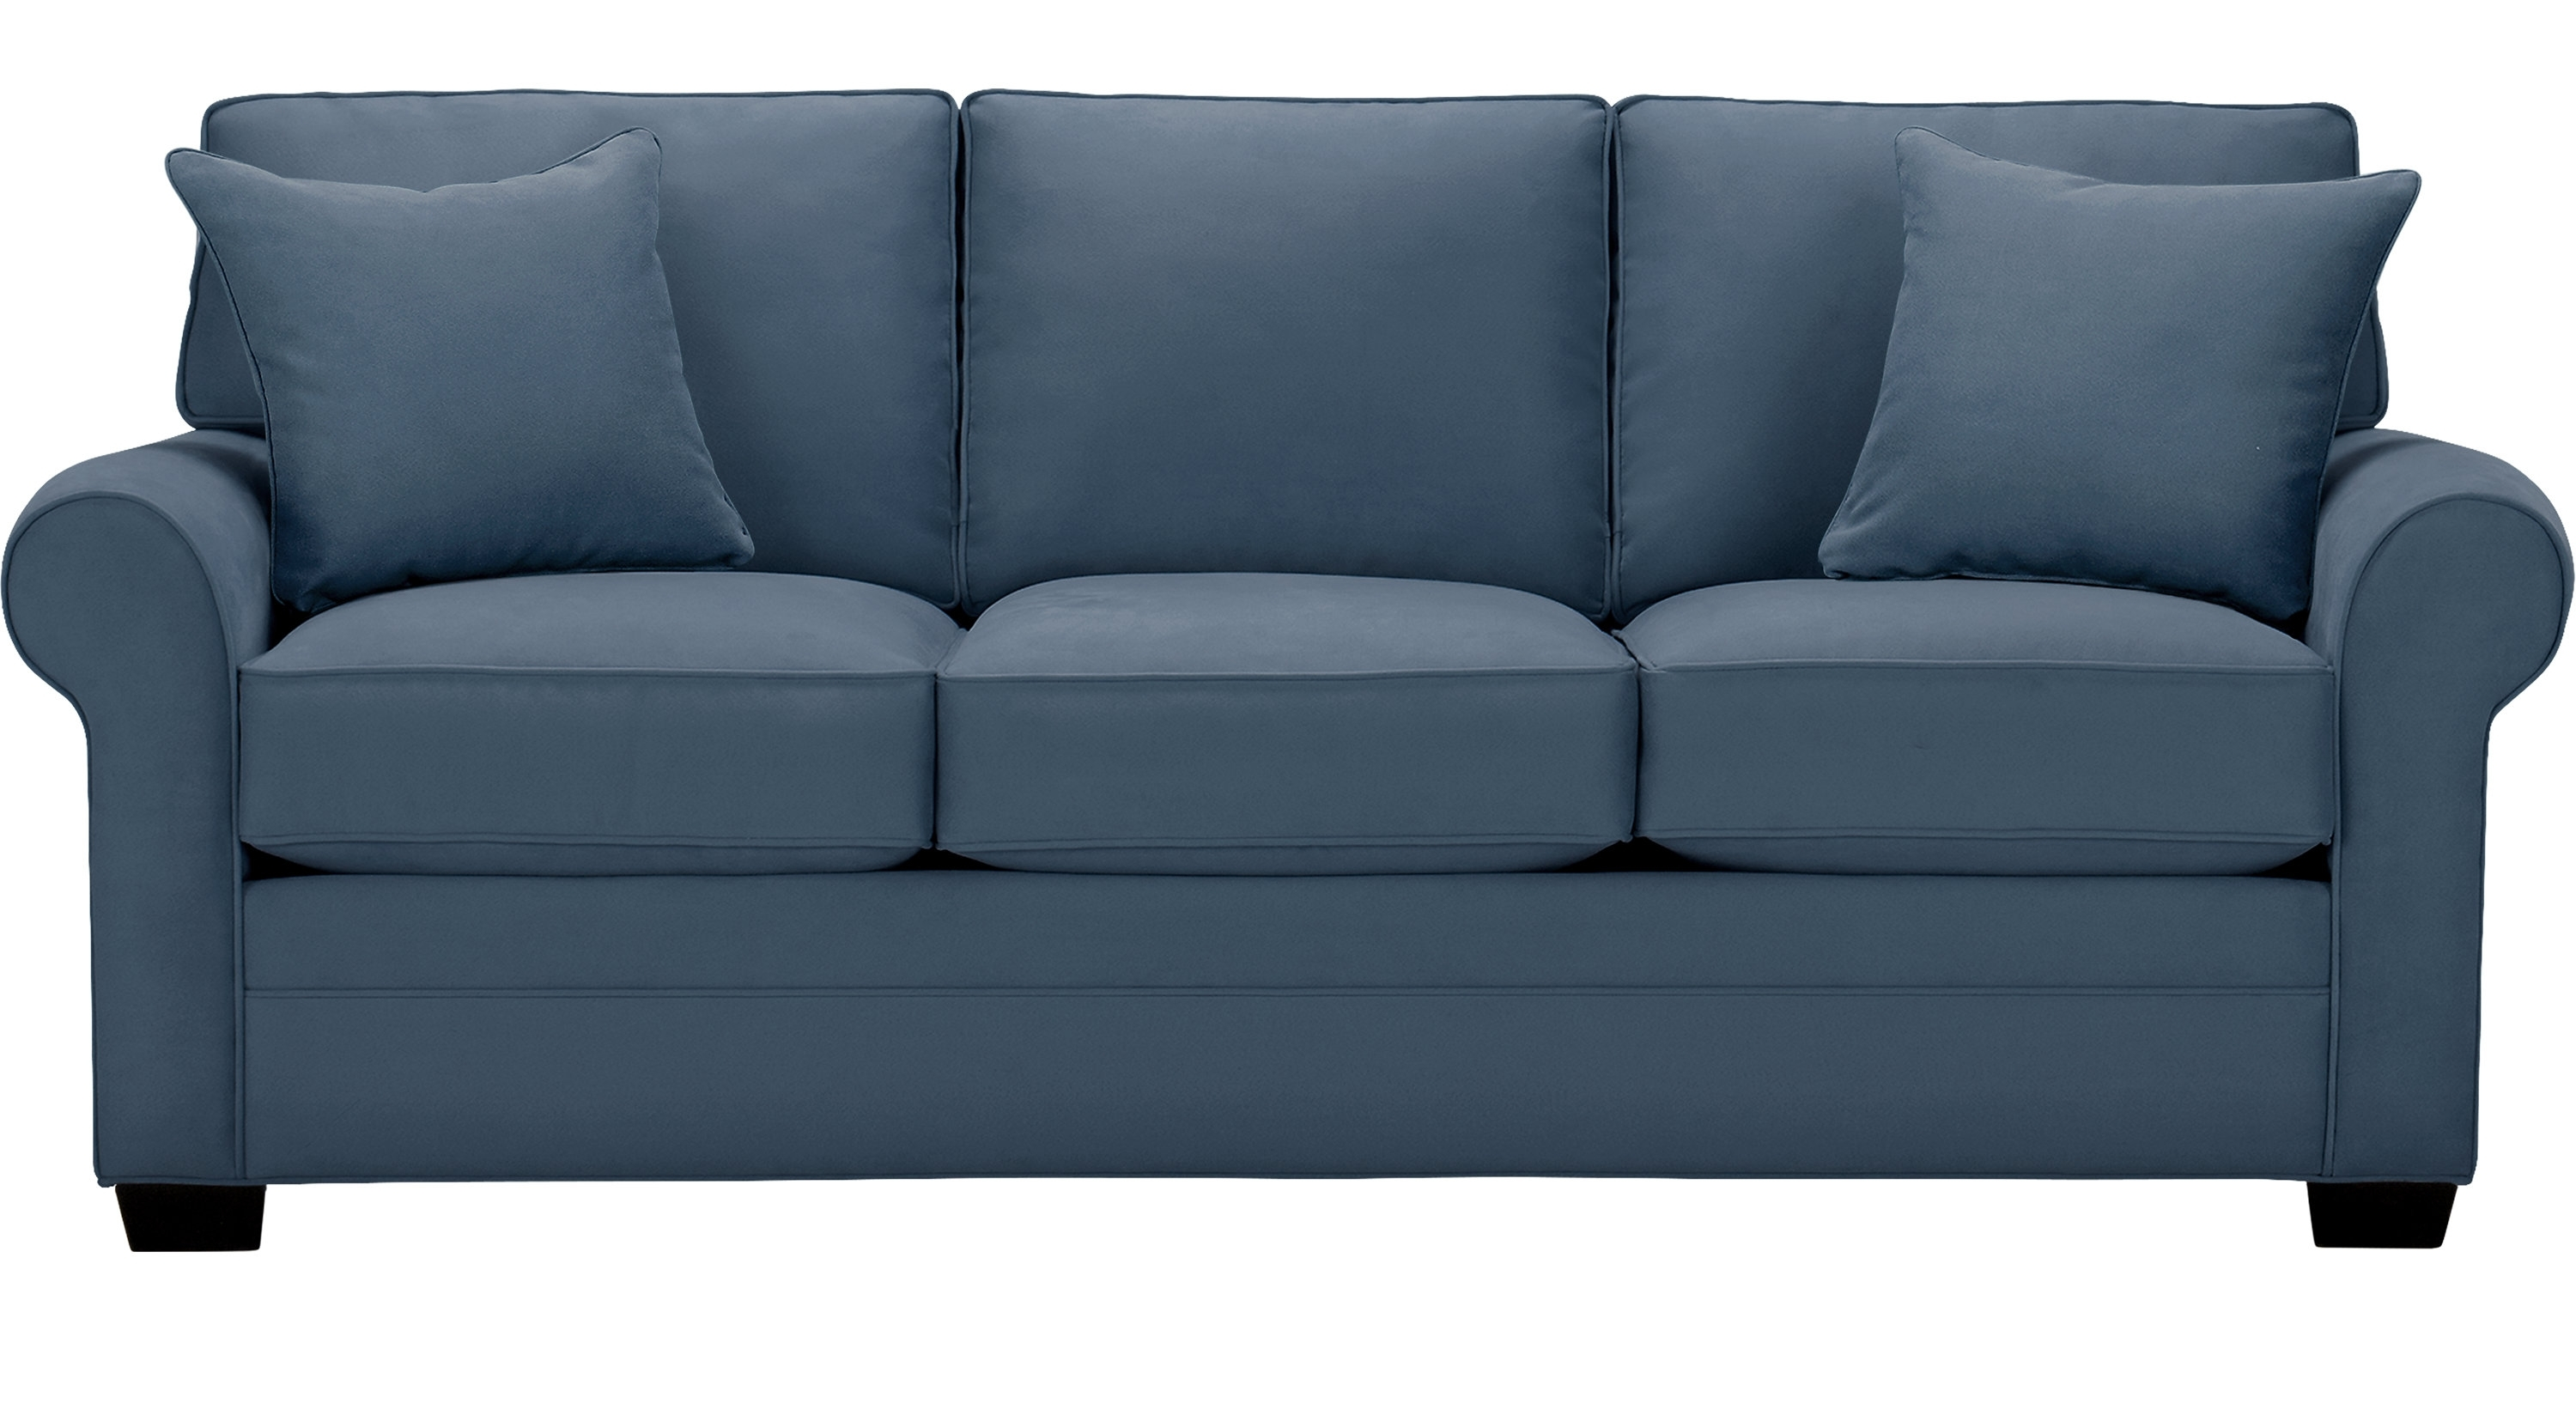 Most Current Cindy Crawford Sofas For $ (View 12 of 20)